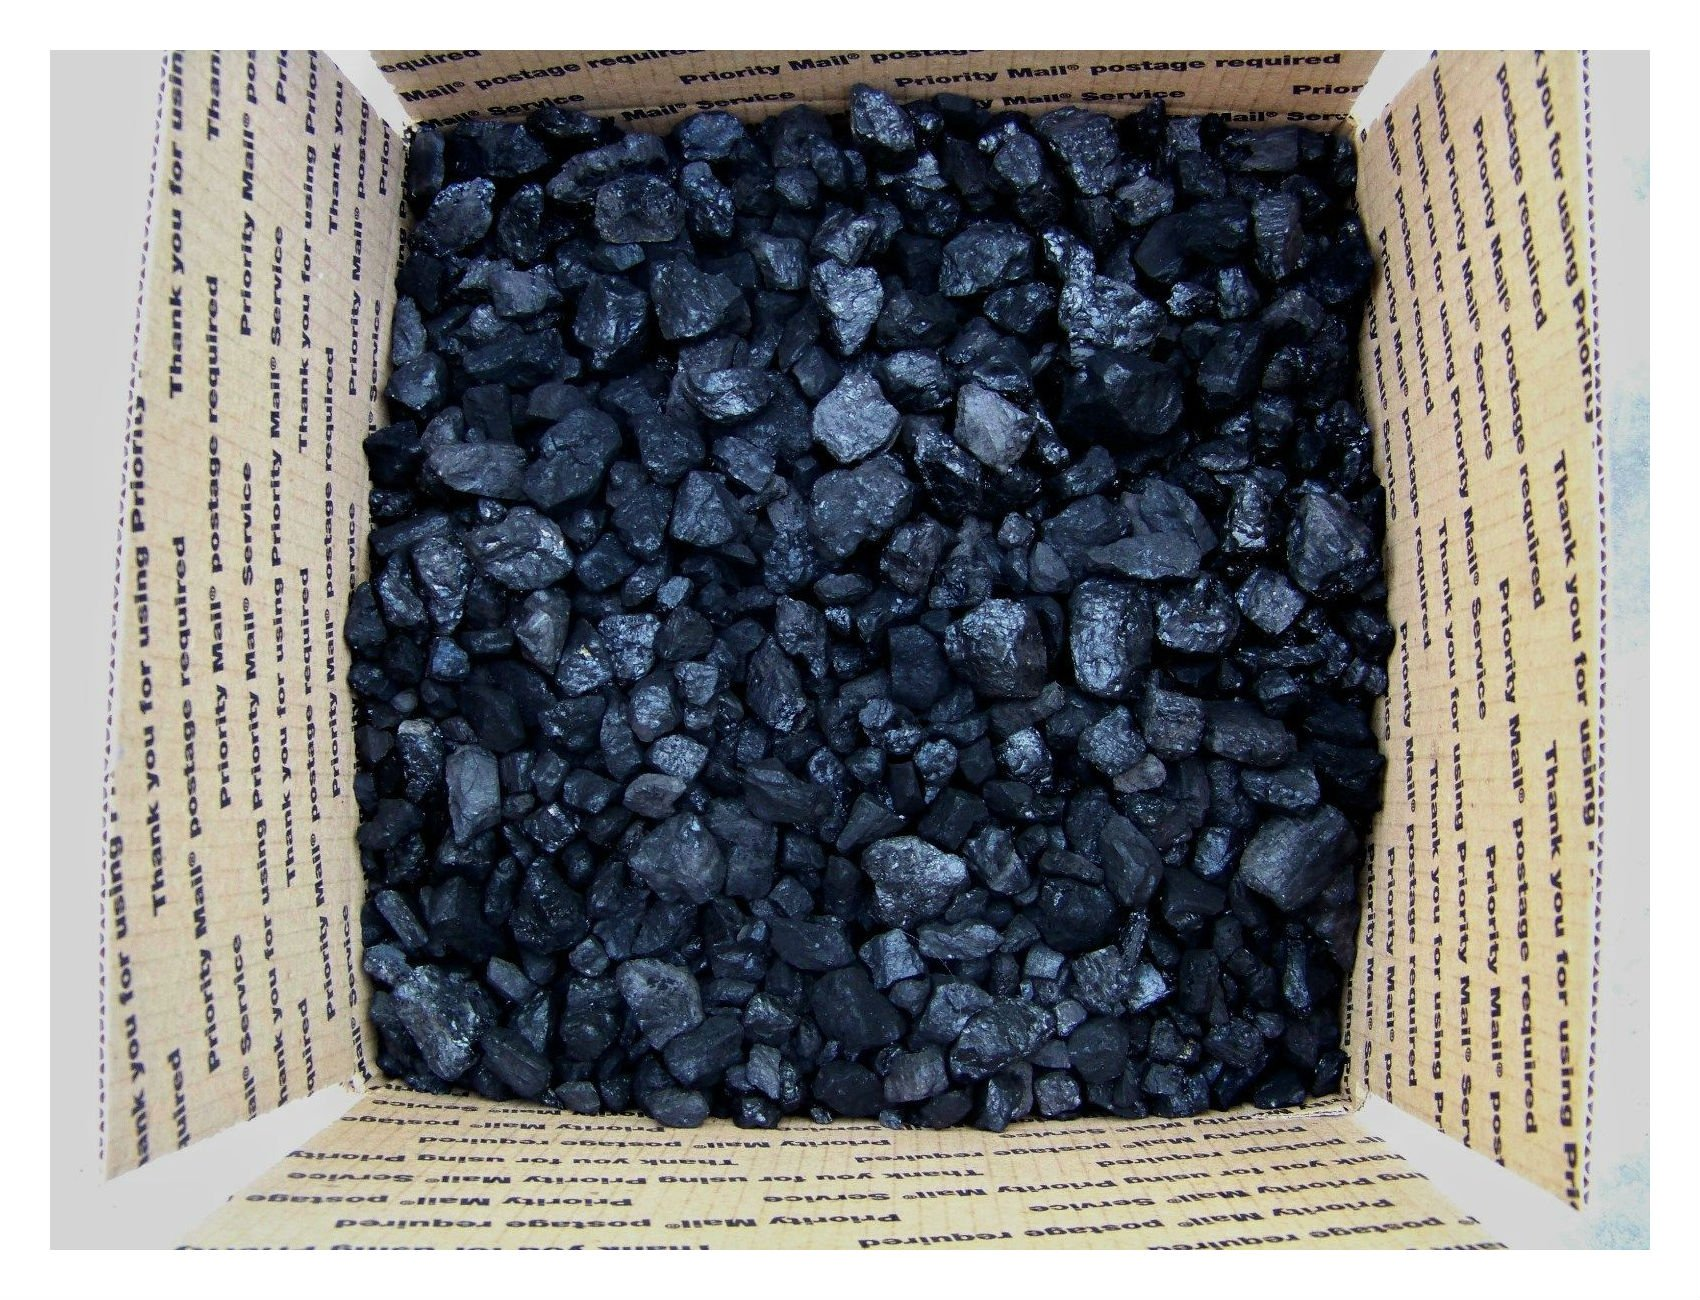 BITUMINOUS BLACKSMITH COAL METALLURGICAL COKING COAL 1/2 CUBIC FT ABOUT 25 LBs. US Seller by Unbranded*